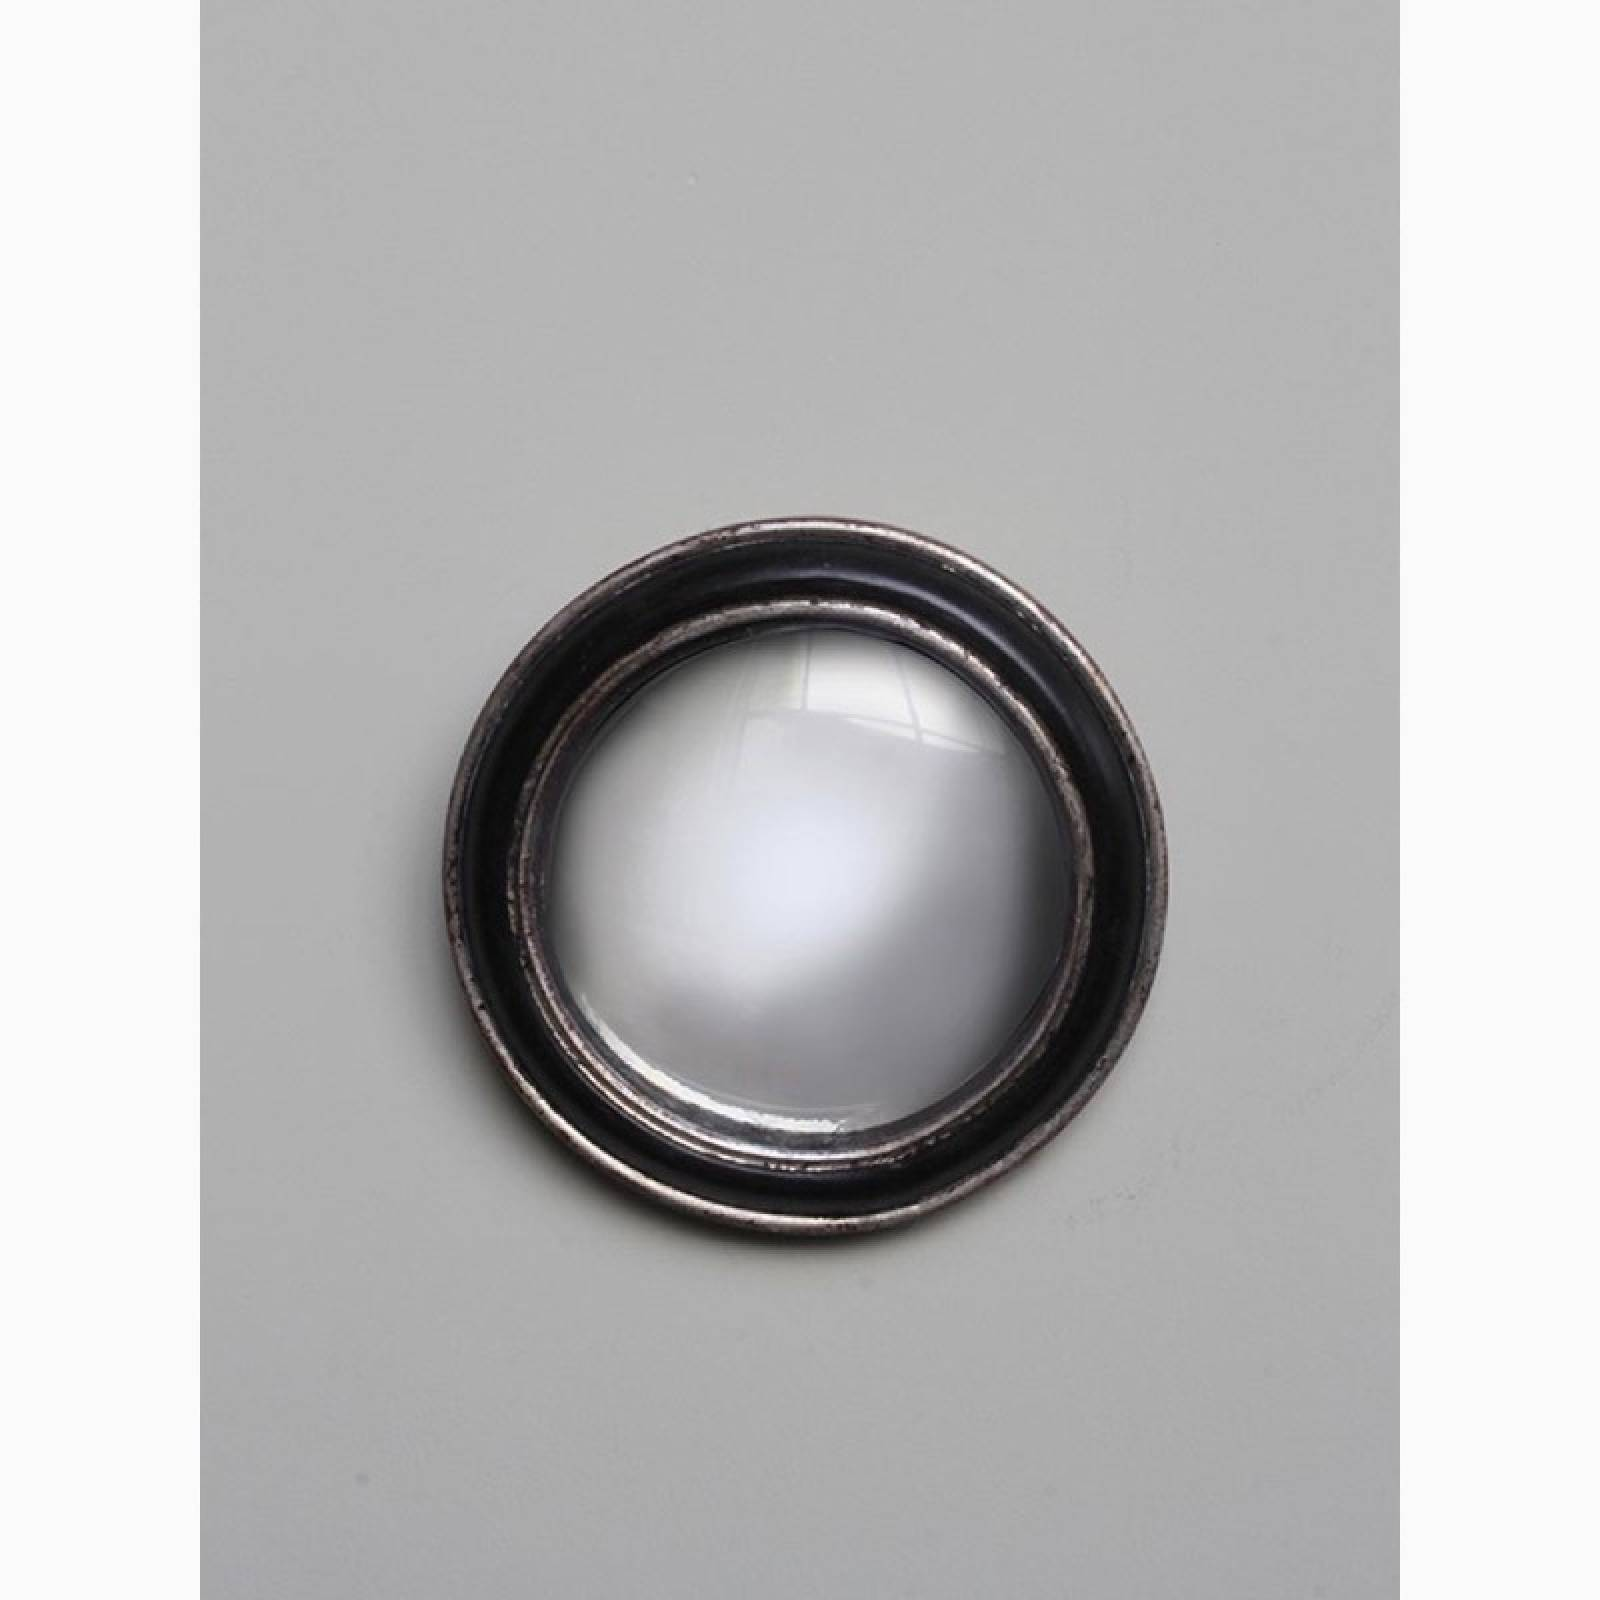 Circular Convex Mirror With Black Silver Patinated Frame D:19cm thumbnails